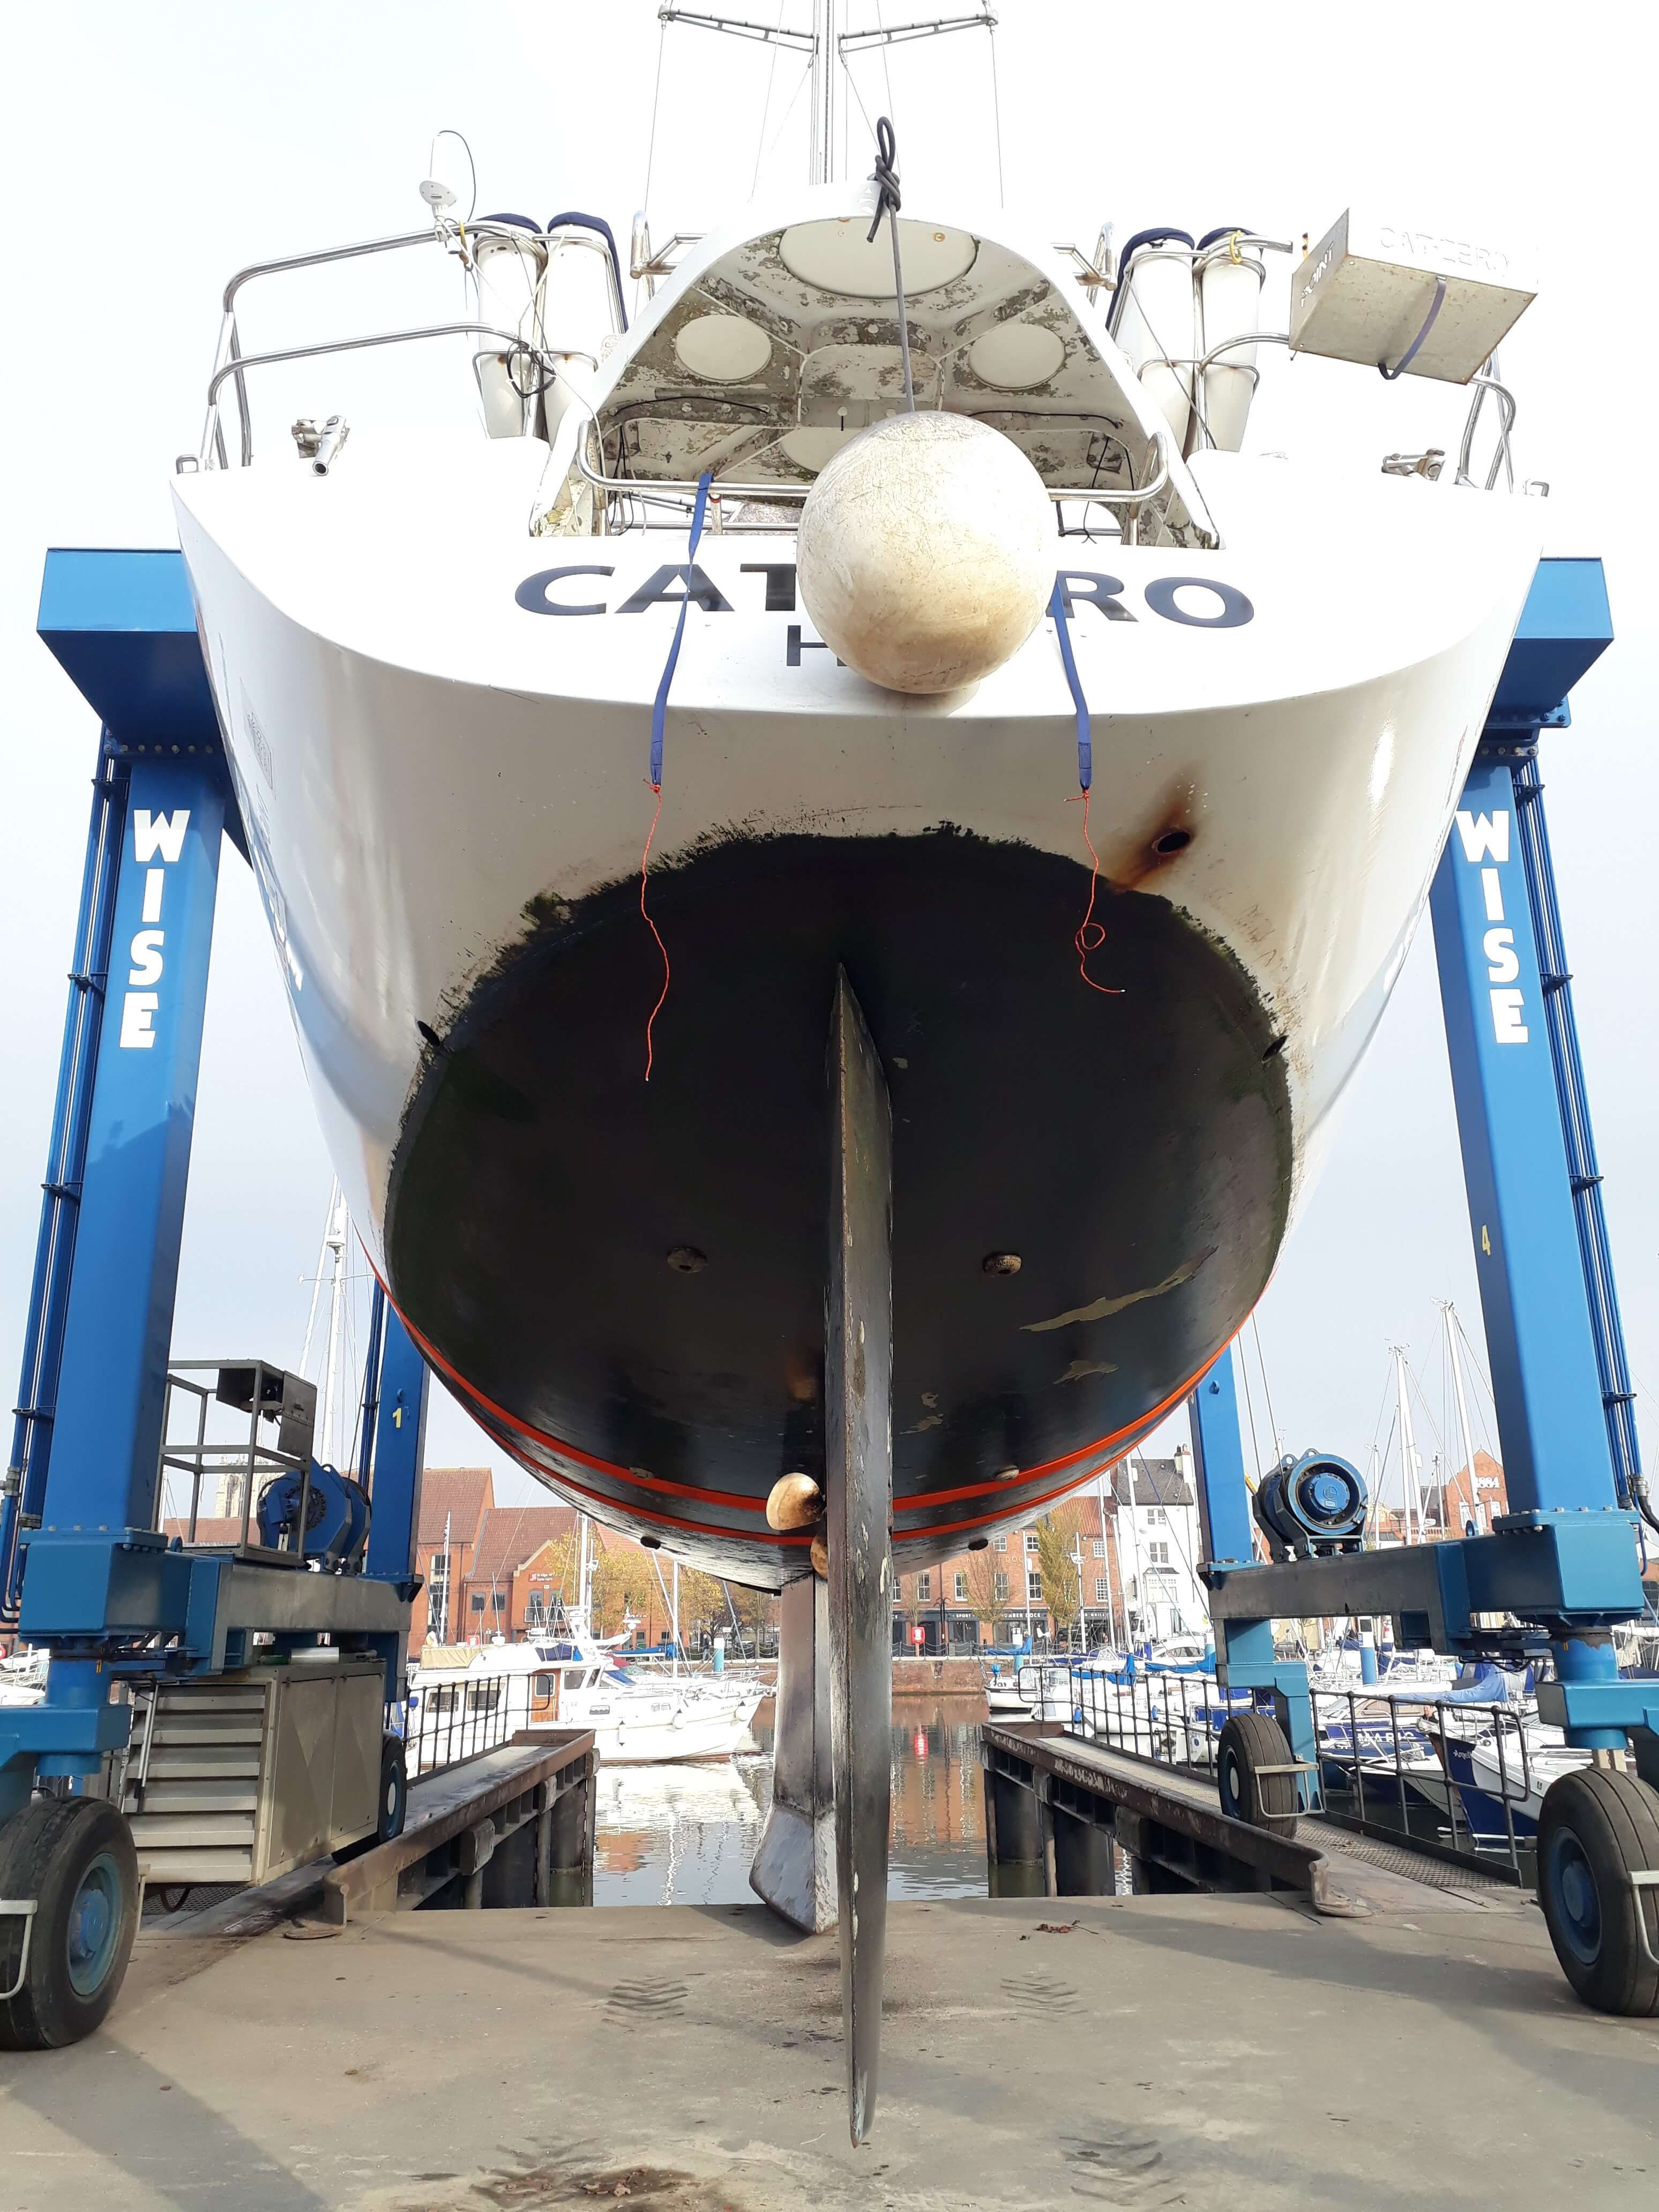 CatZero's on dry land for its winter spruce-up